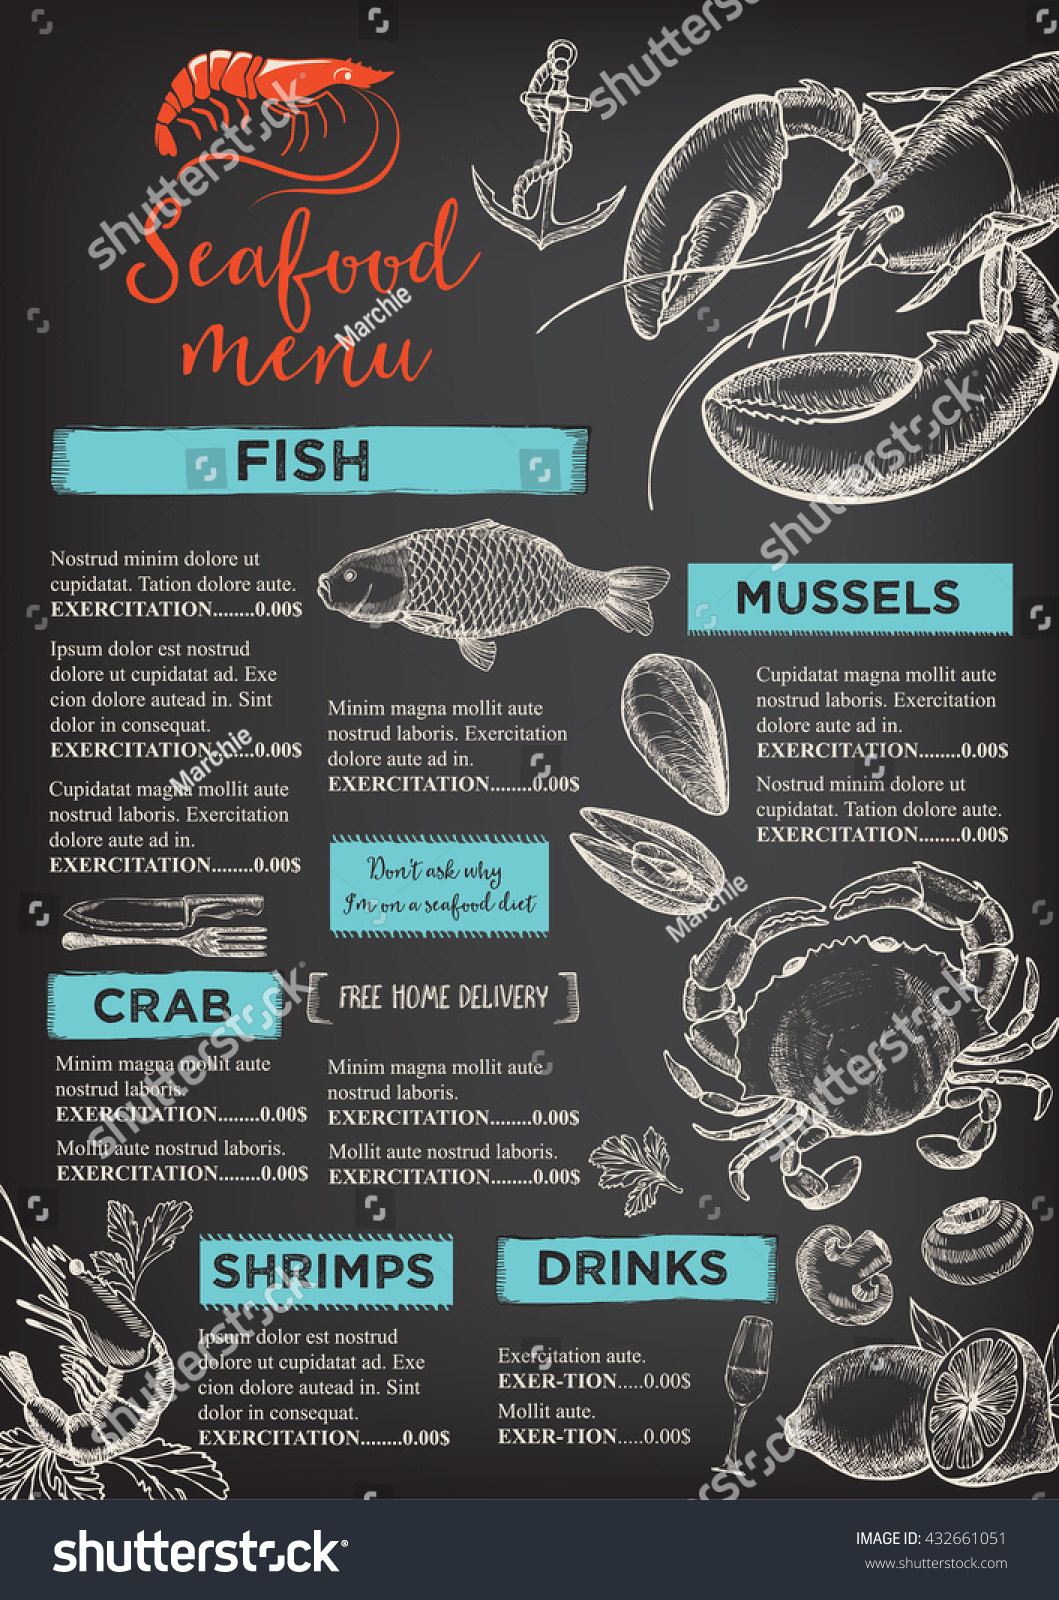 Restaurant Brochure Design Vector : Seafood restaurant brochure menu design vector stock